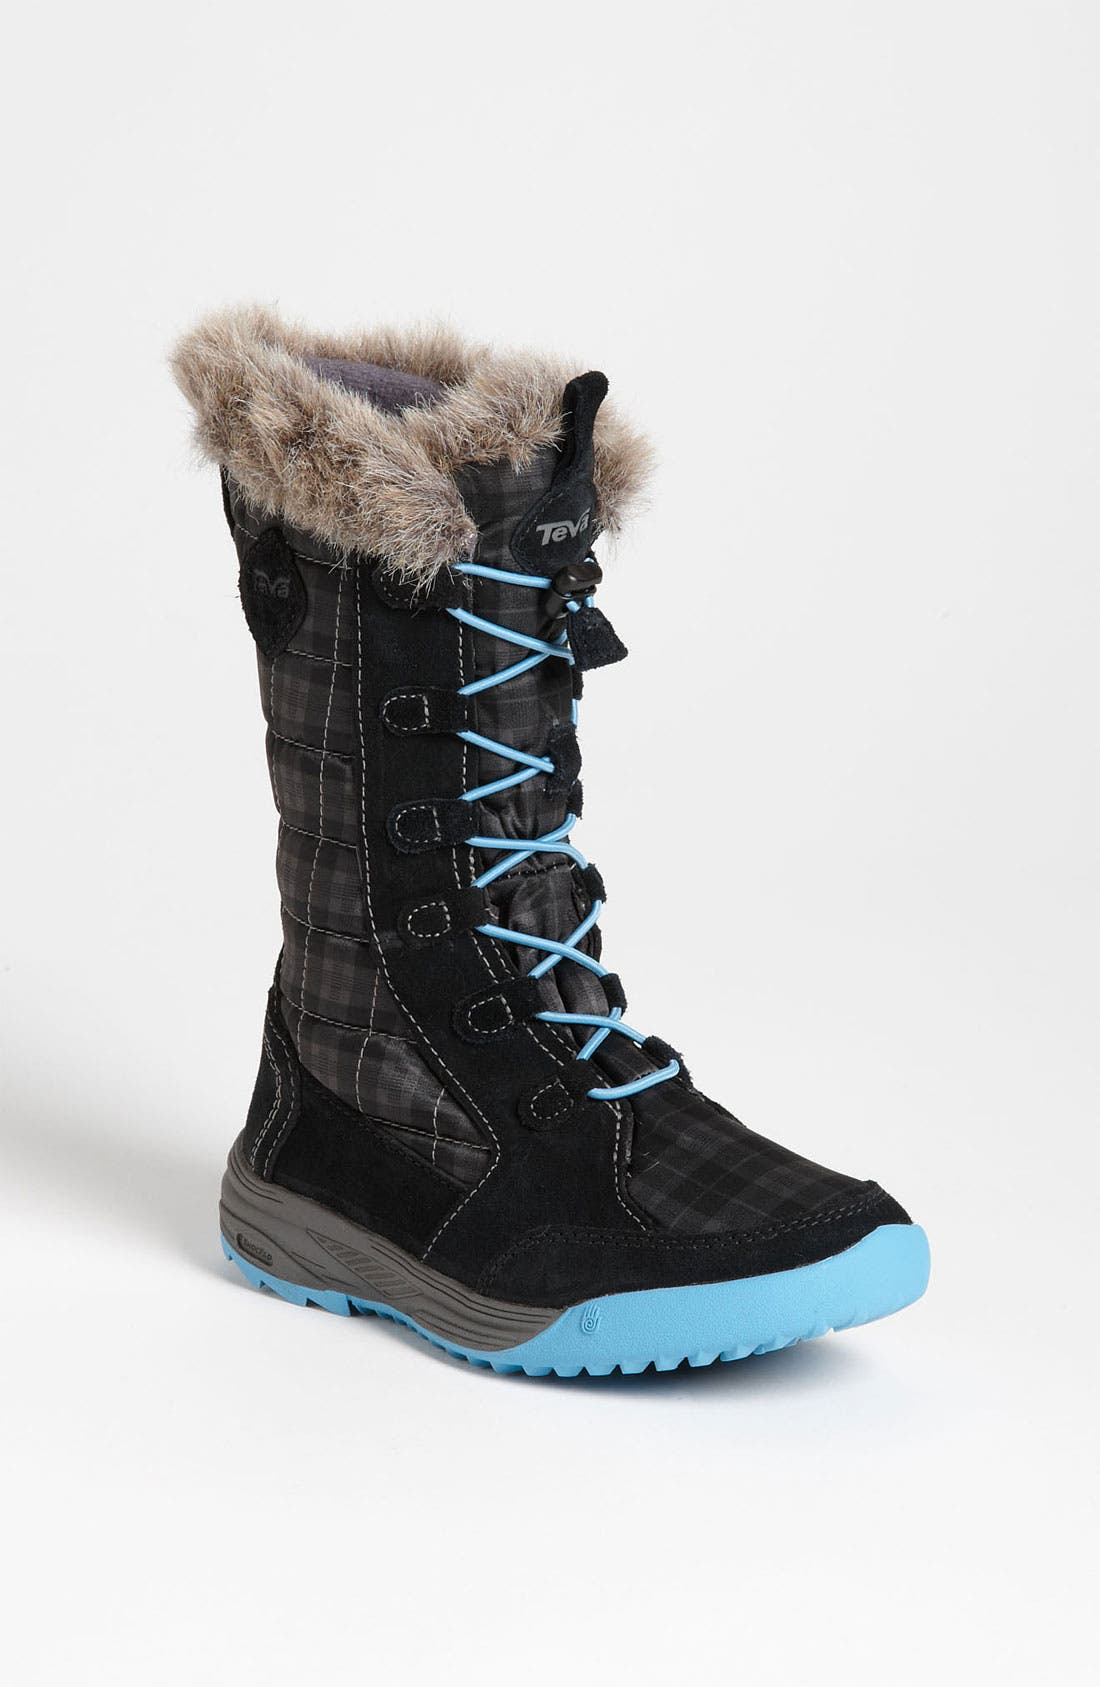 Main Image - Teva 'Lenawee' Waterproof Boot (Toddler, Little Kid & Big Kid)